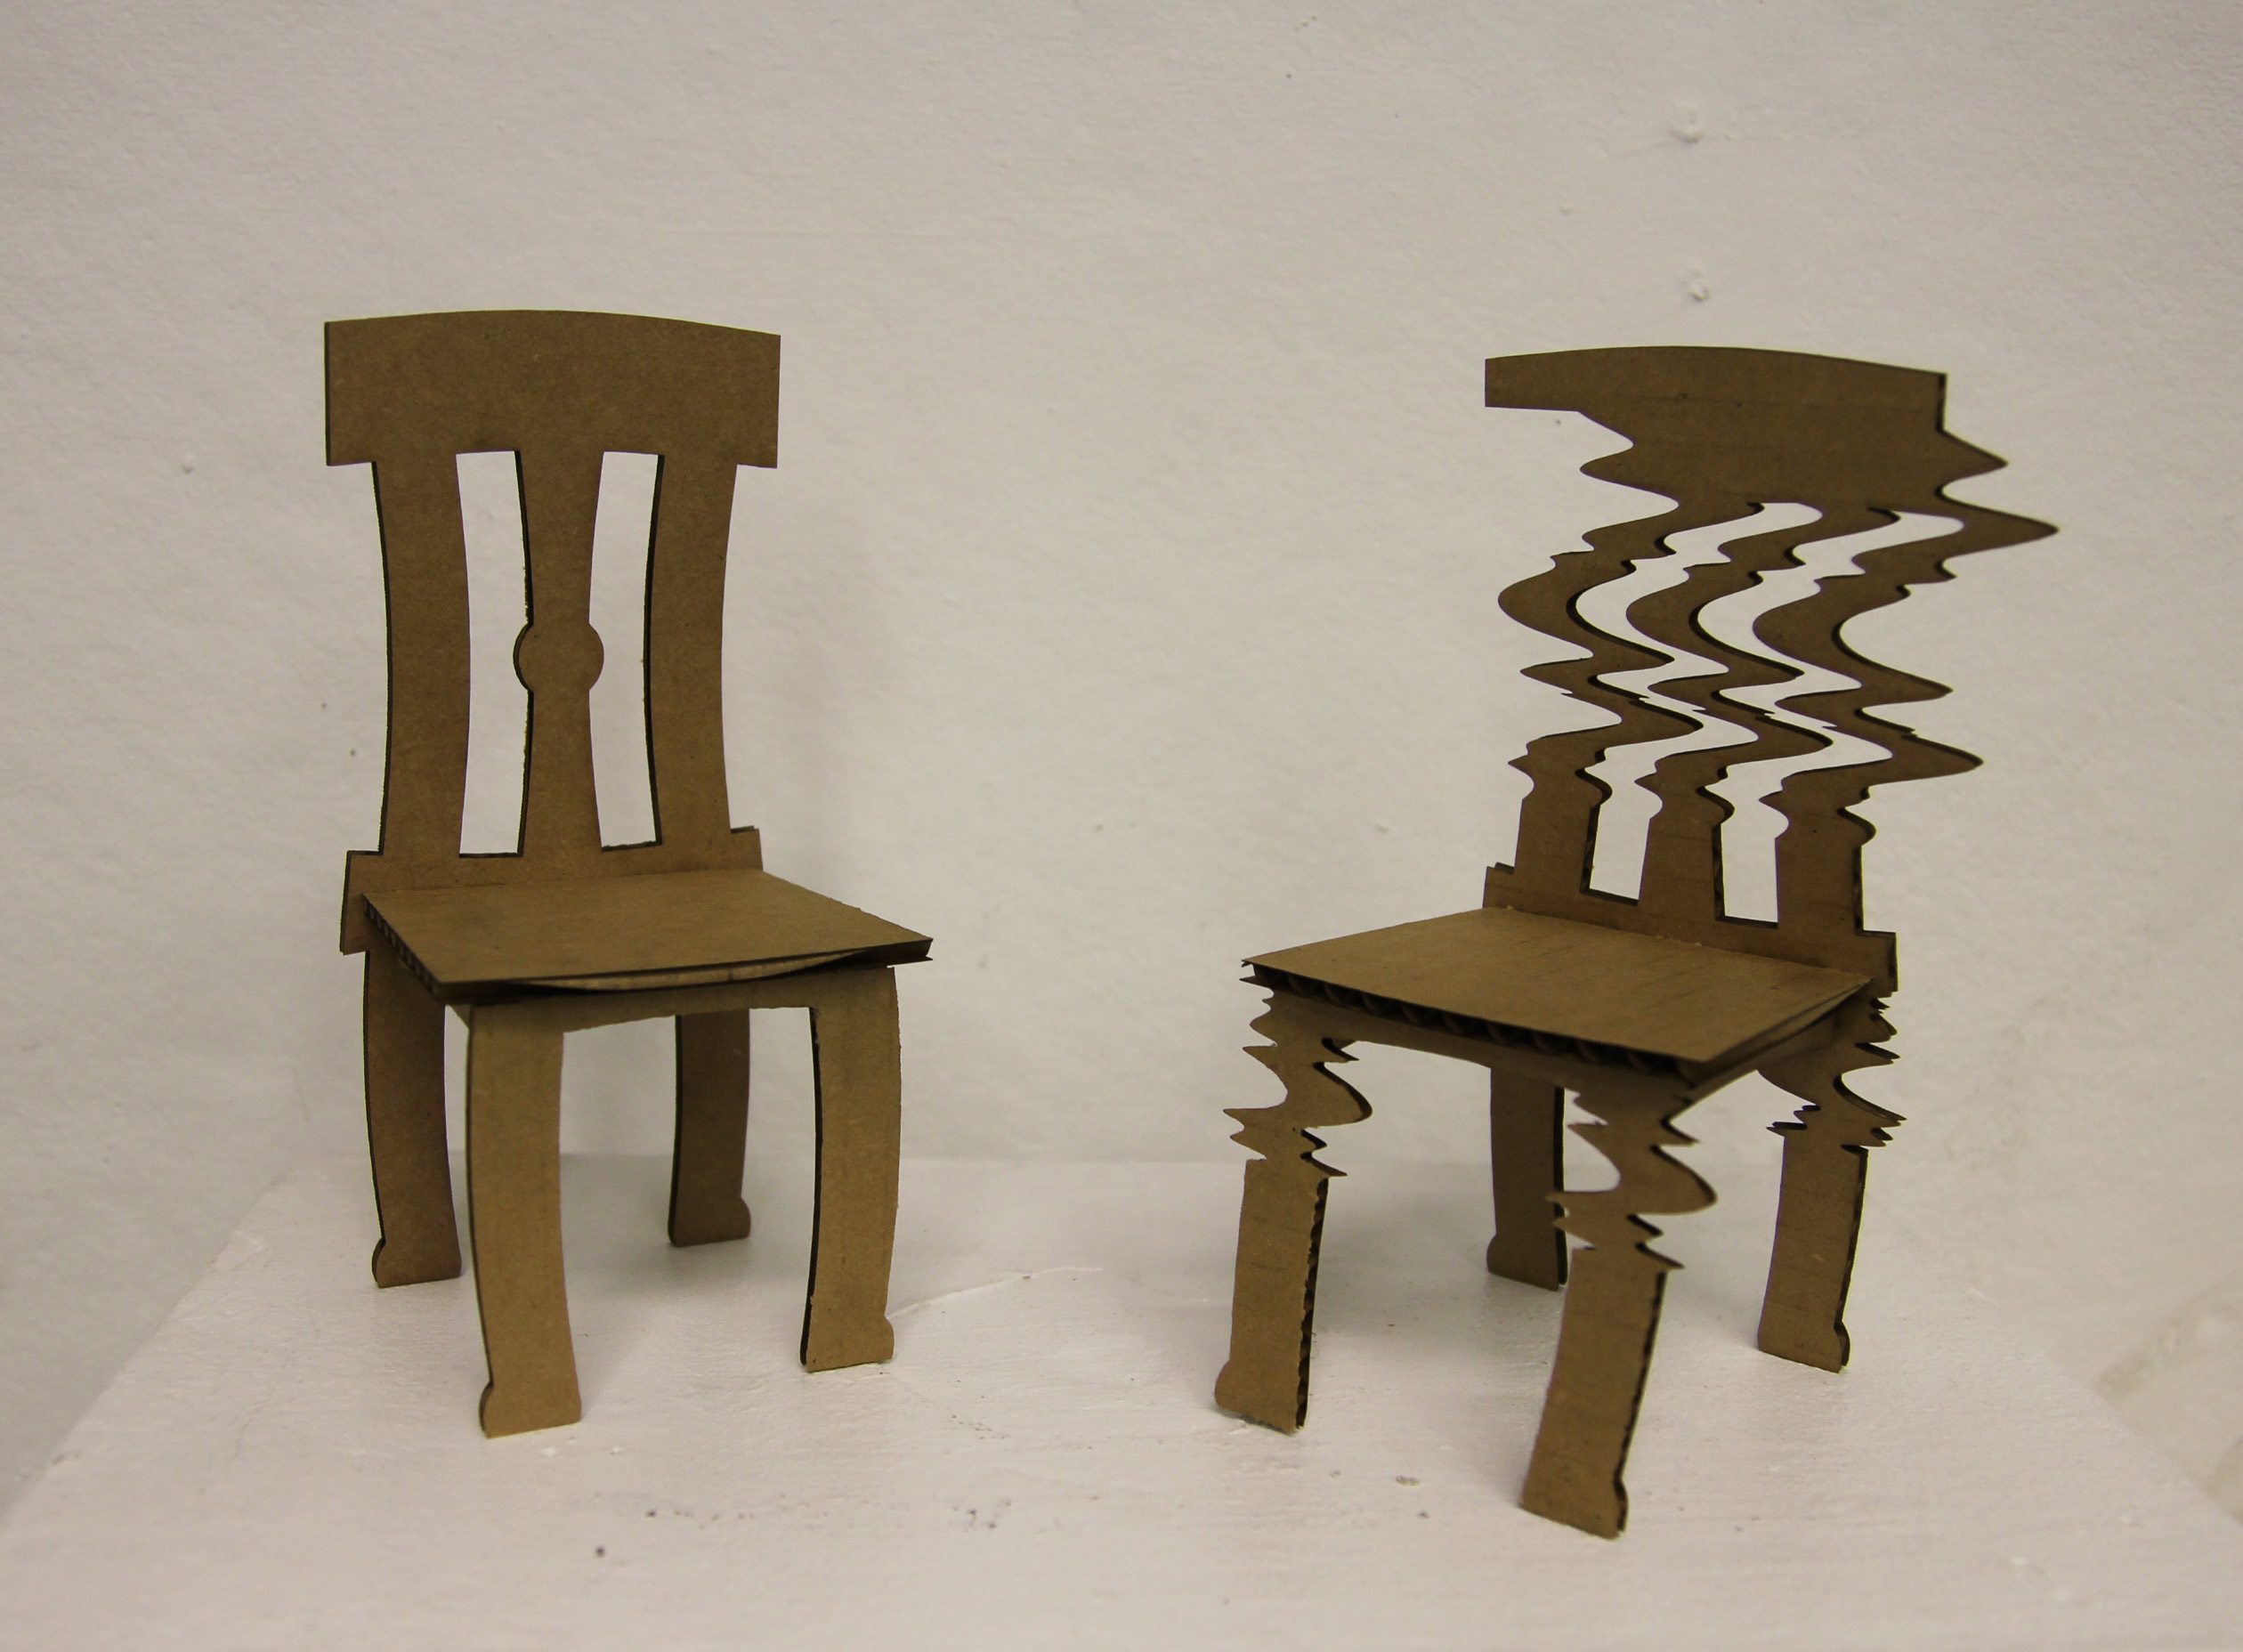 Artistic Chairs 3 D Media Studio I Hey Robot Let 39s Make Something Two